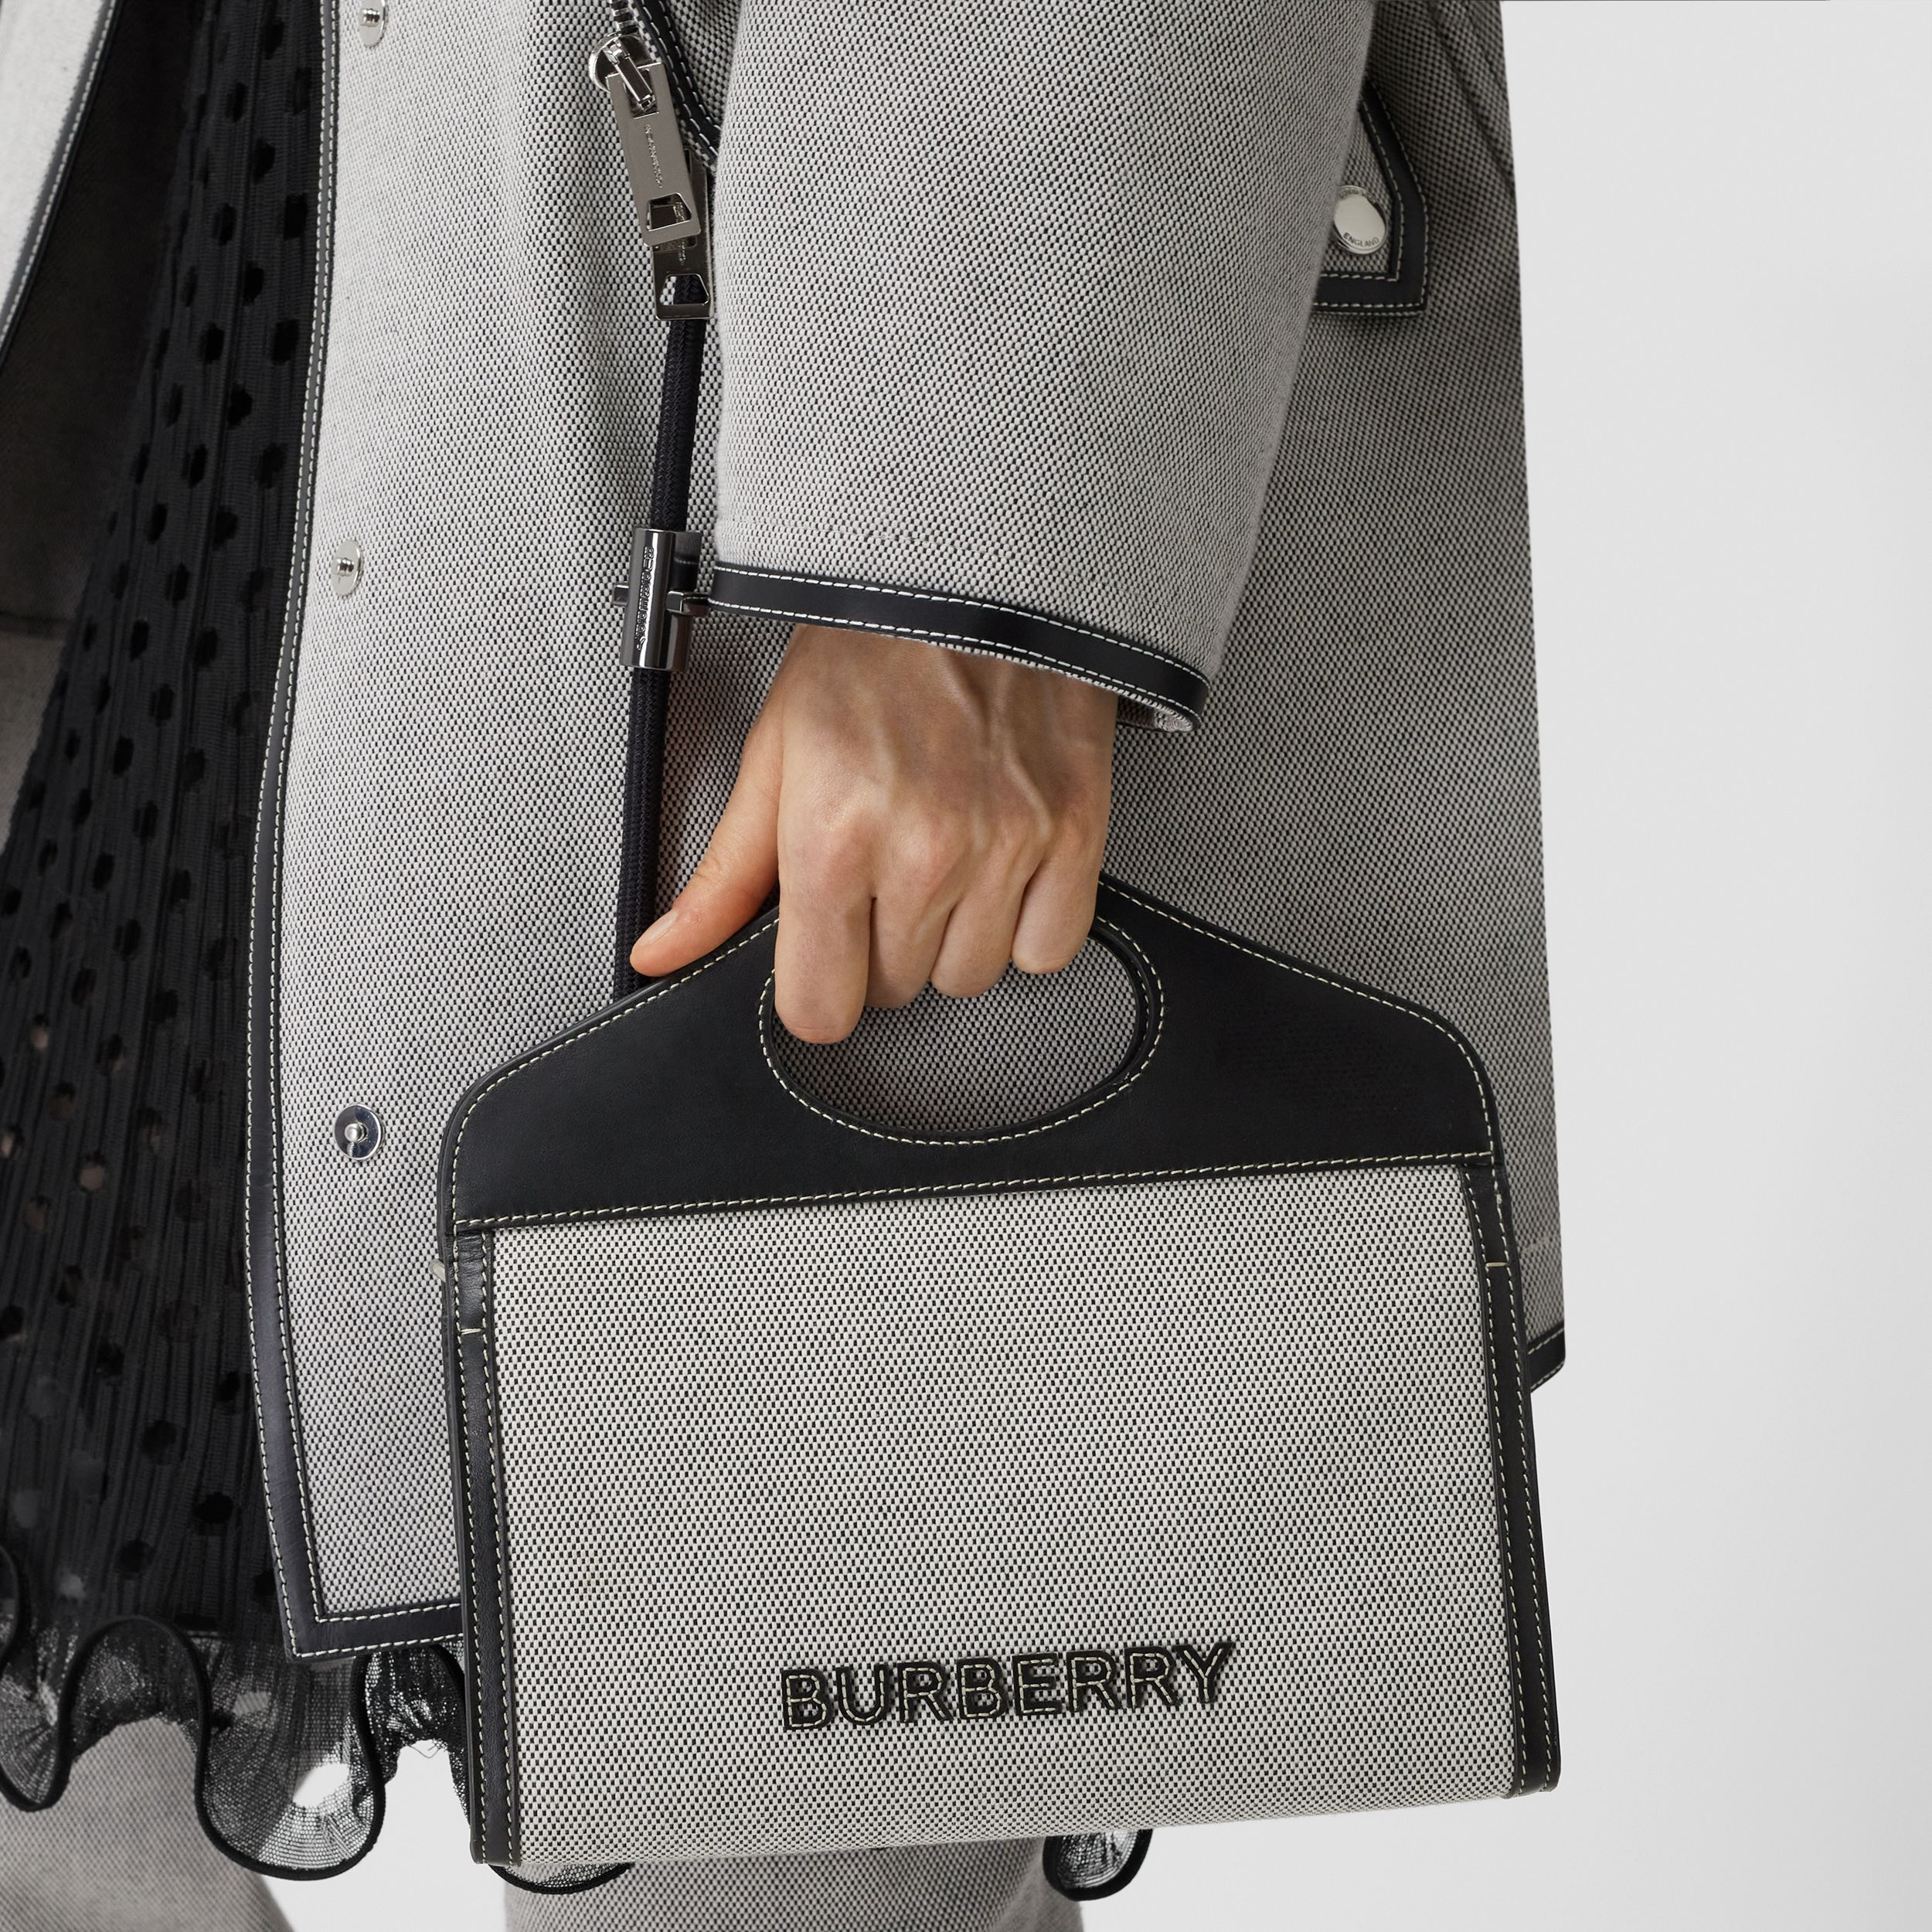 Canvas and Leather Foldover Pocket Bag in Black - Men | Burberry - 3